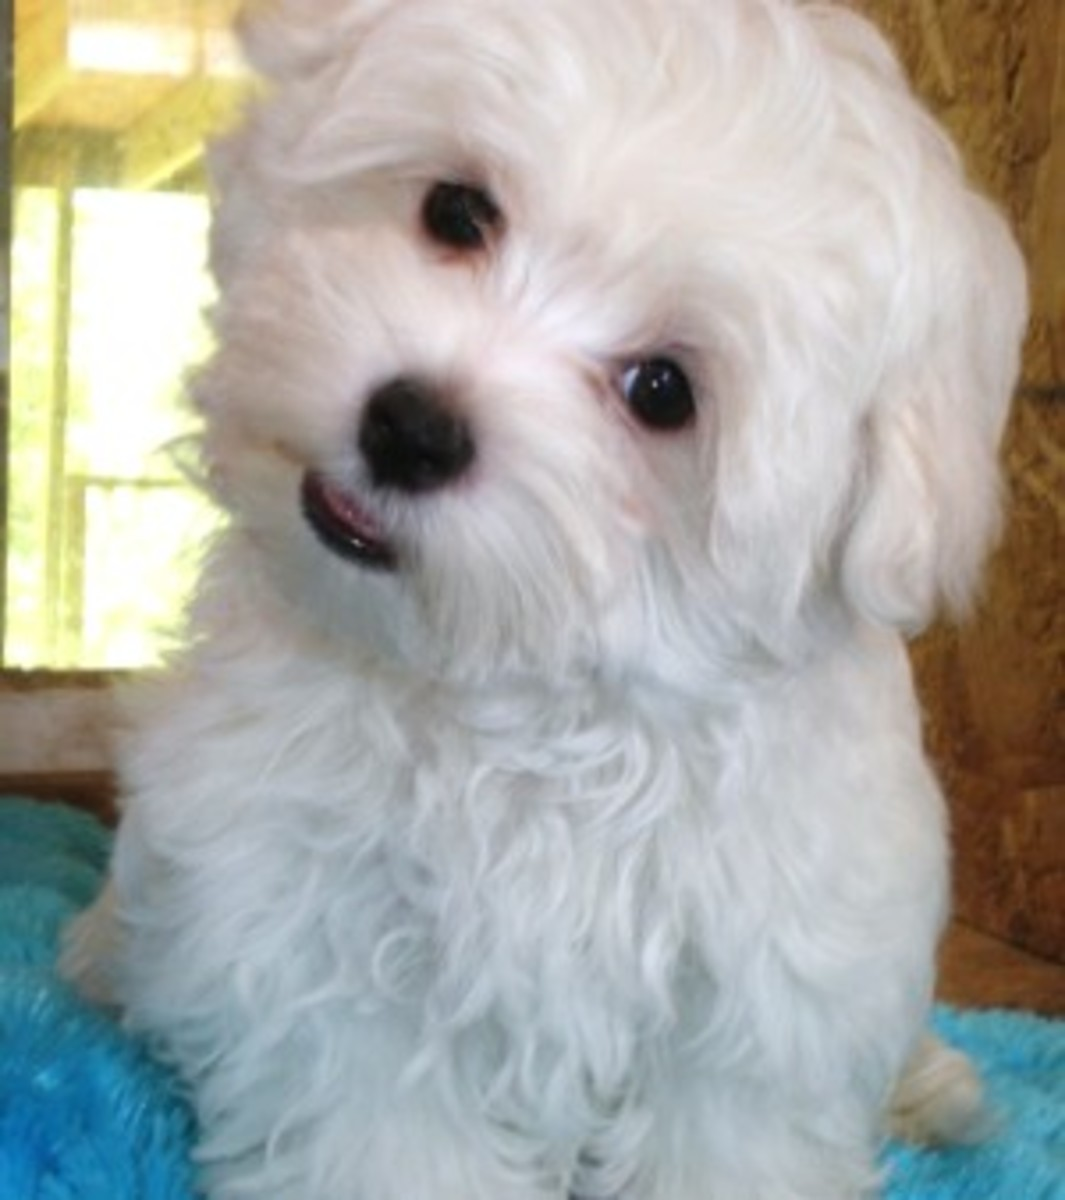 12-week-old Maltese puppy.